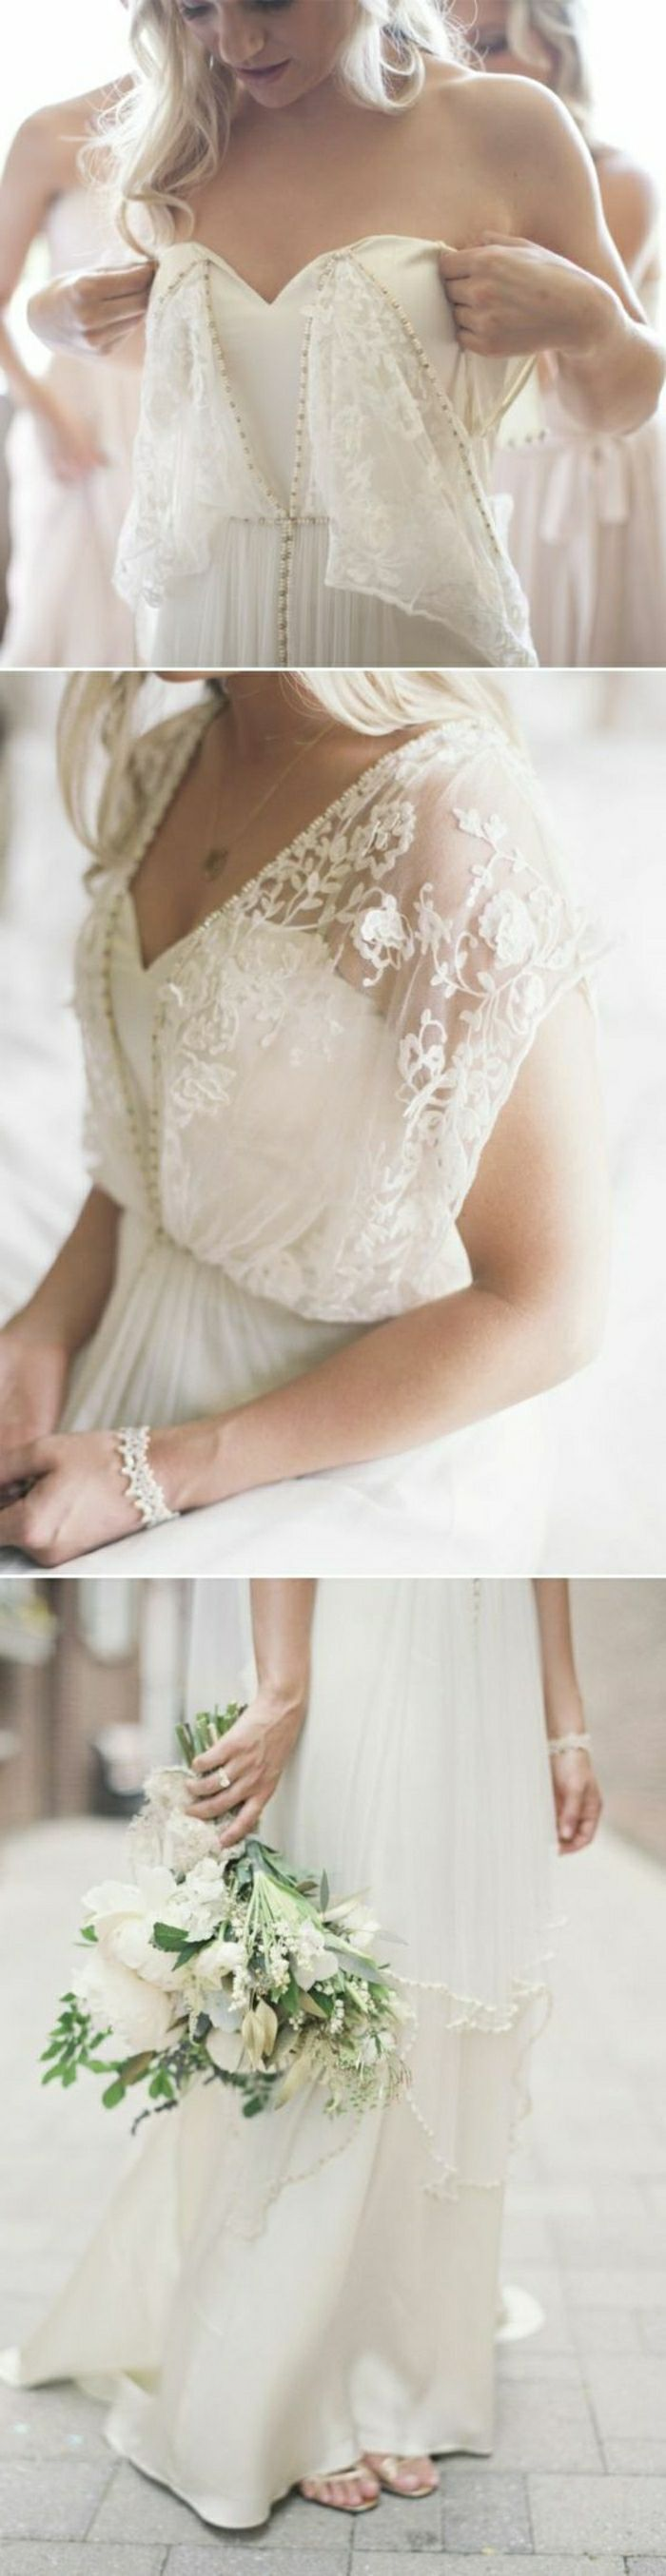 three close ups of a wedding dress with lace details, worn by a blonde young bride, with a white bracelet, holding a bouquet of white flowers